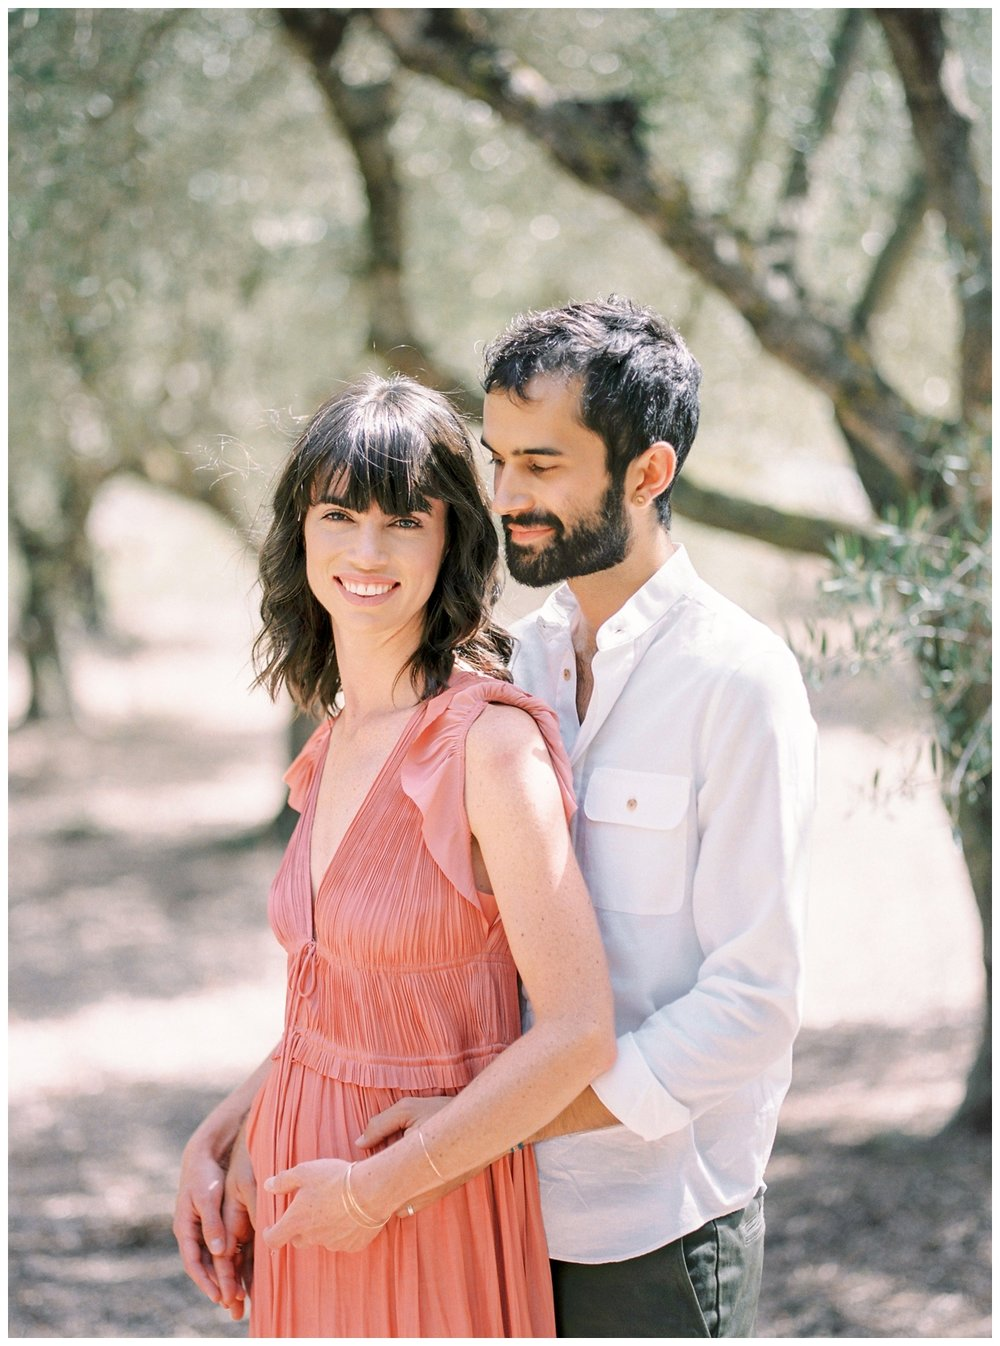 engagement session in an olive grove in Messinia Greece by fine art wedding photographer Lissa Ryan Photography